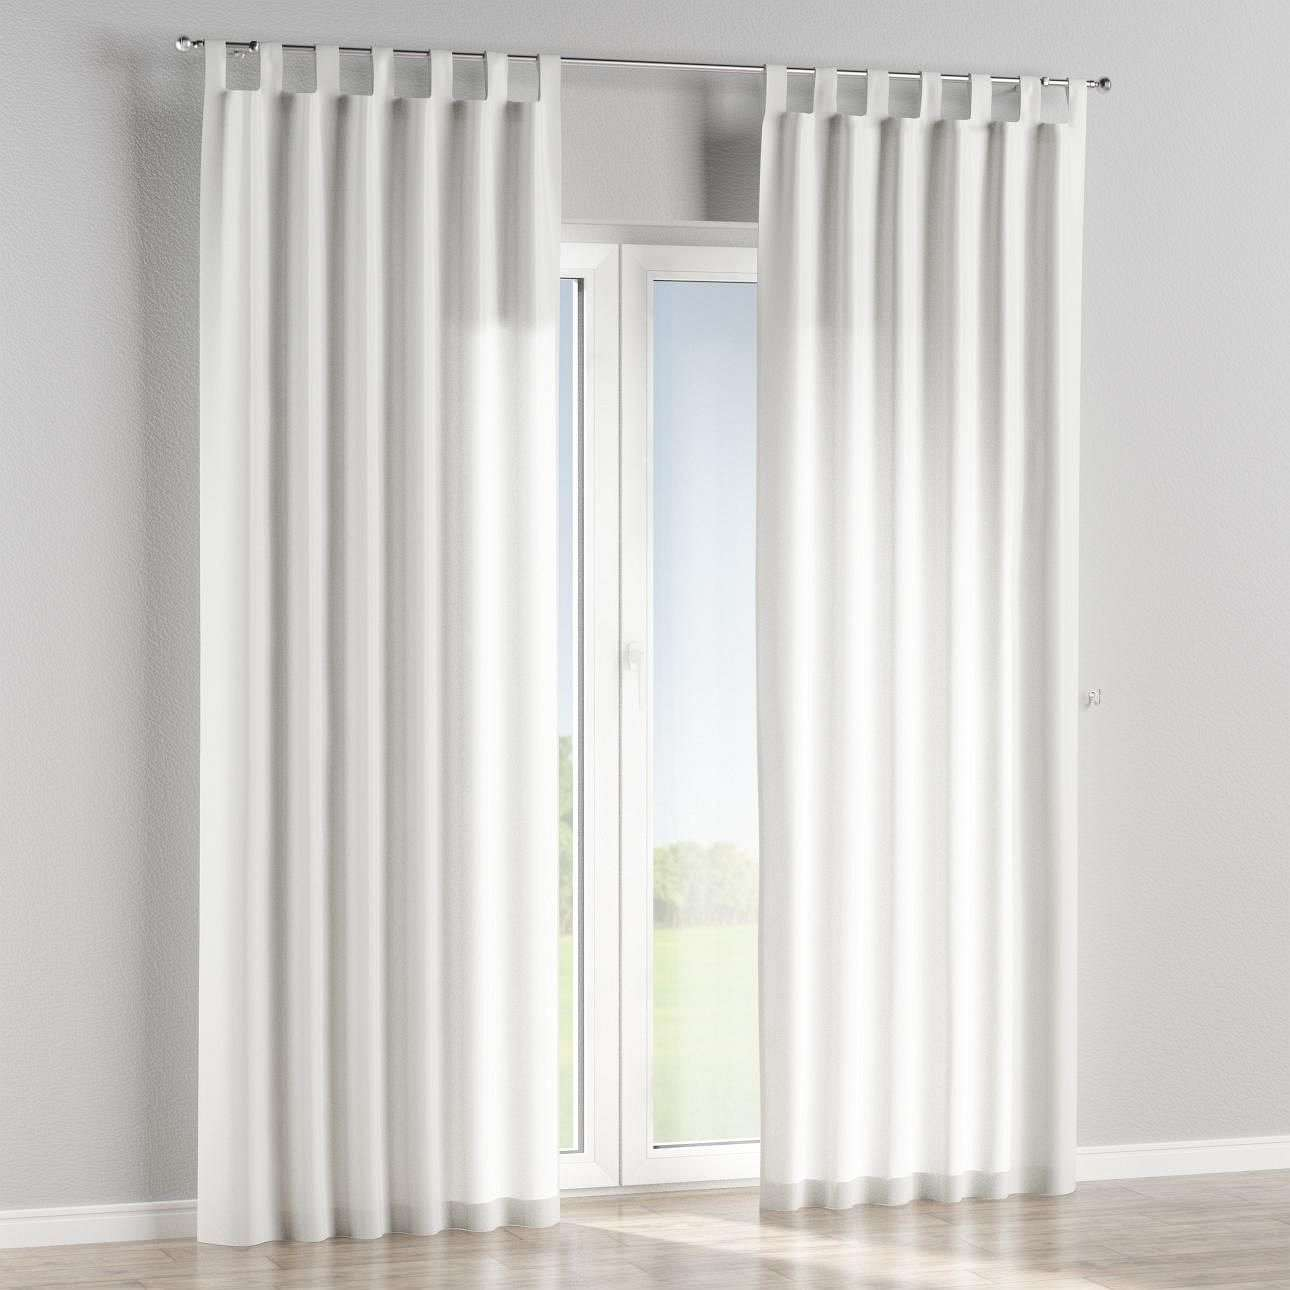 Tab top curtains in collection Mirella, fabric: 141-12